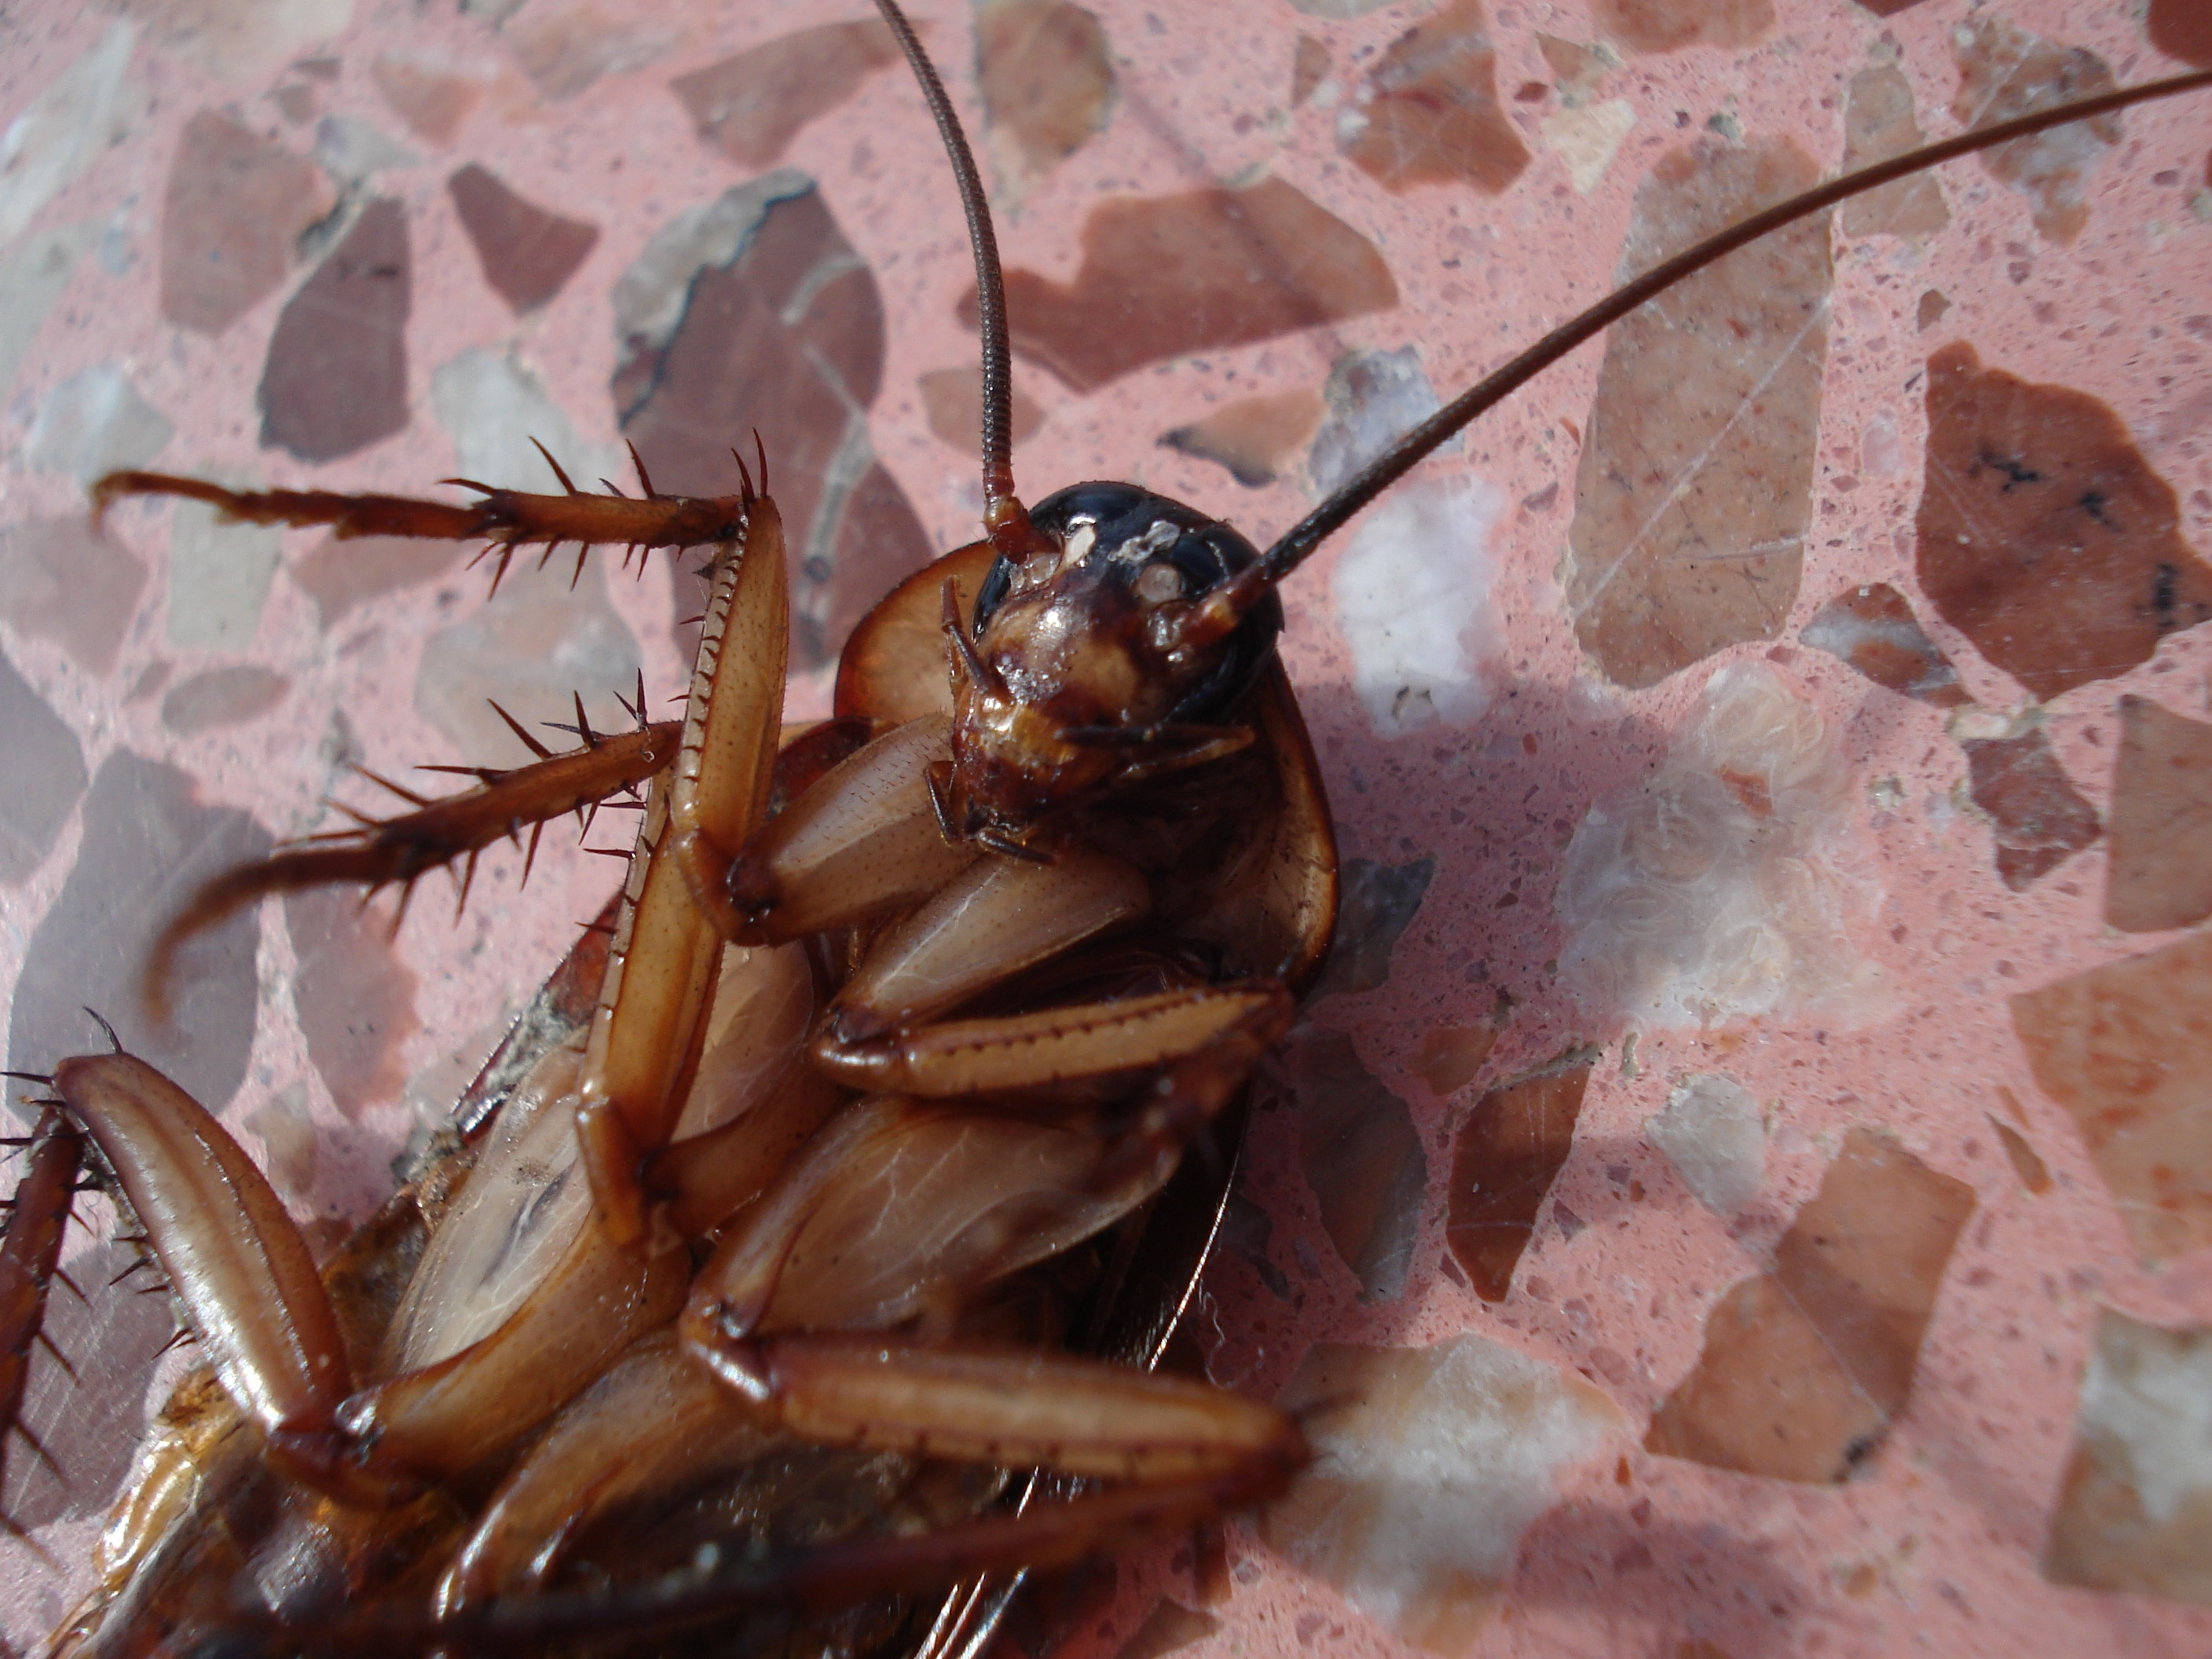 Cockroach flipped on its back